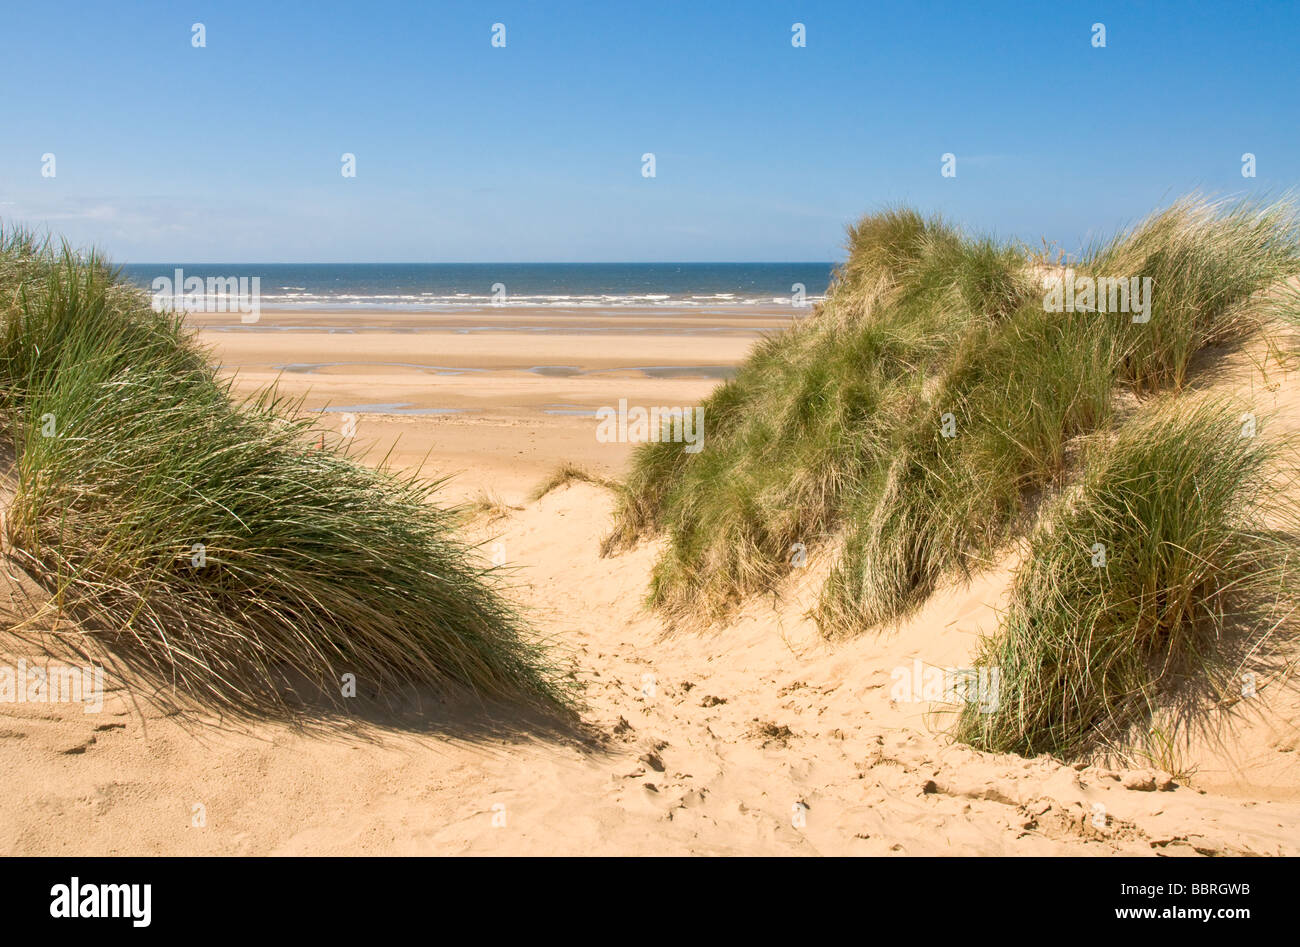 Beach and sand dunes at Formby, Lancashire. - Stock Image